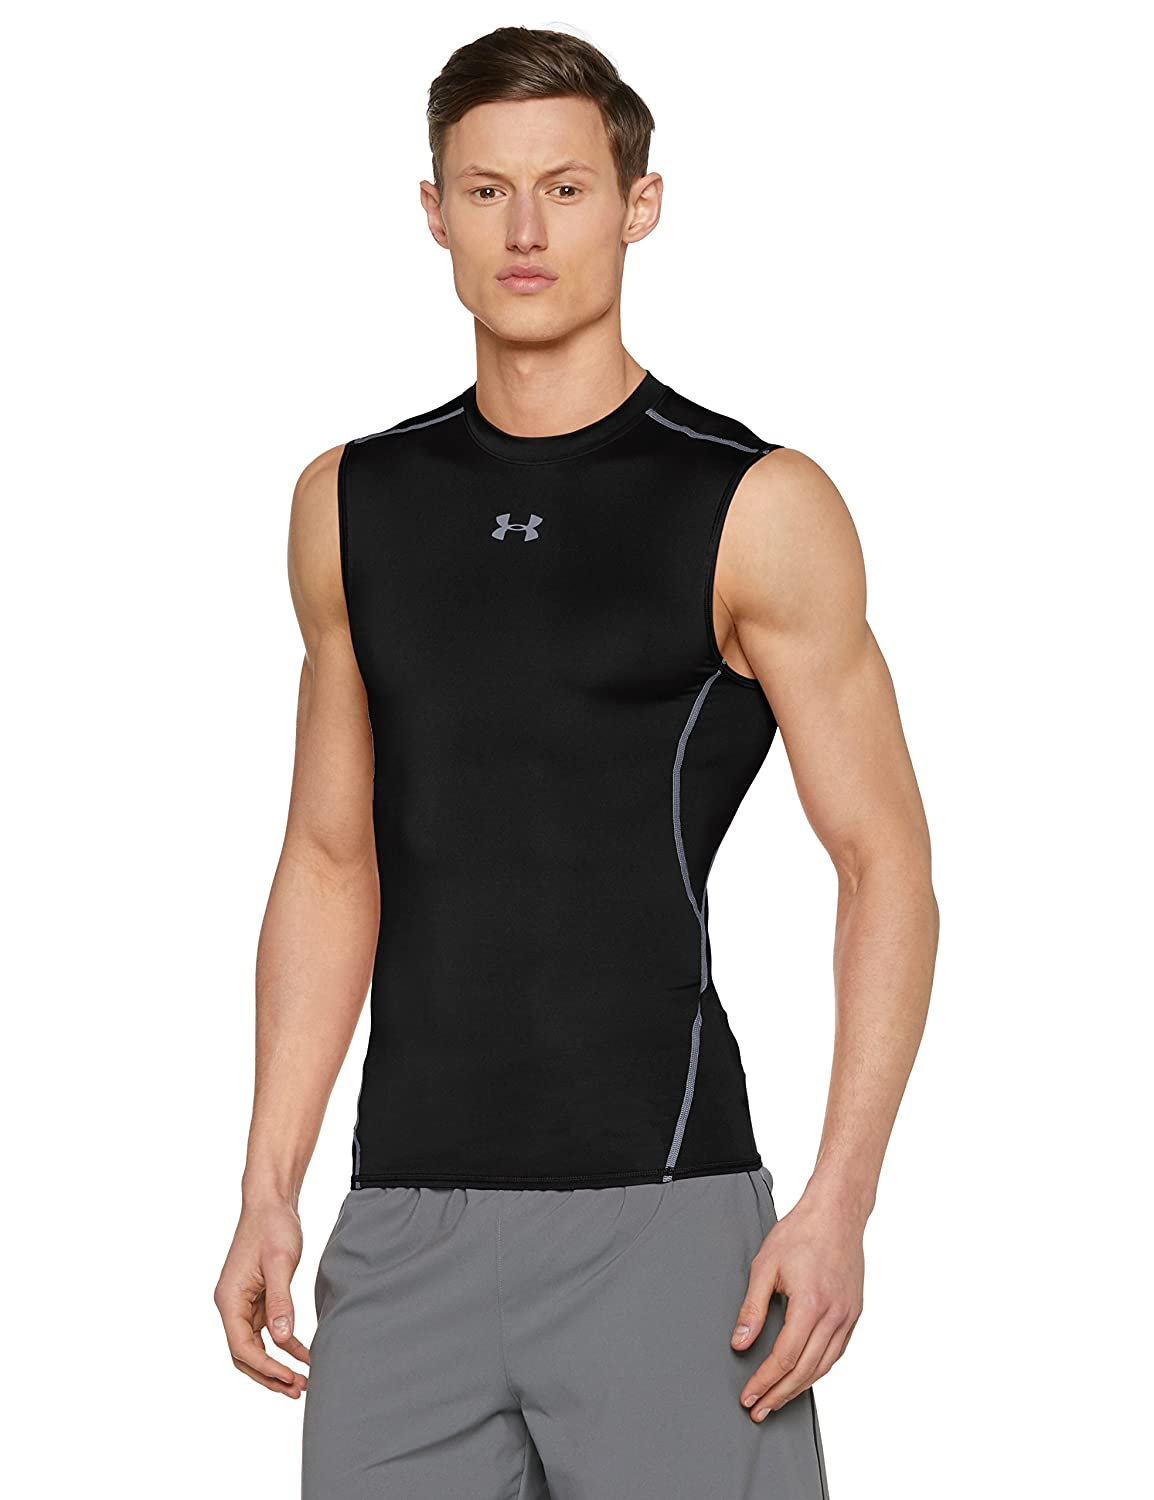 Sleeveless Compression Shirt for men